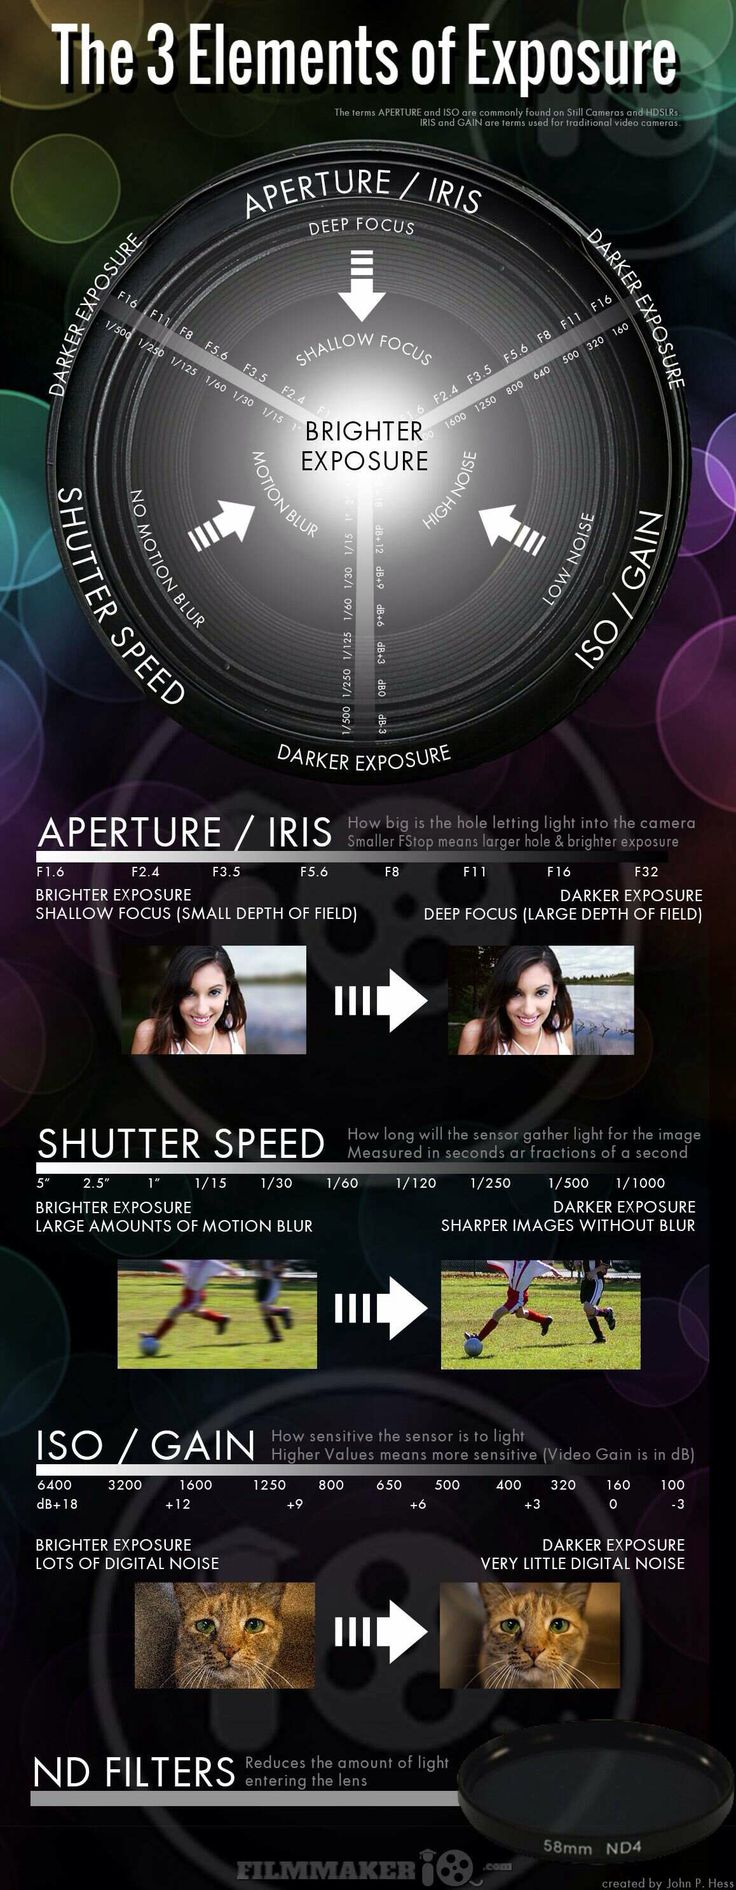 This is an EXTREMELY helpful cheat sheet for some very important settings on your camera